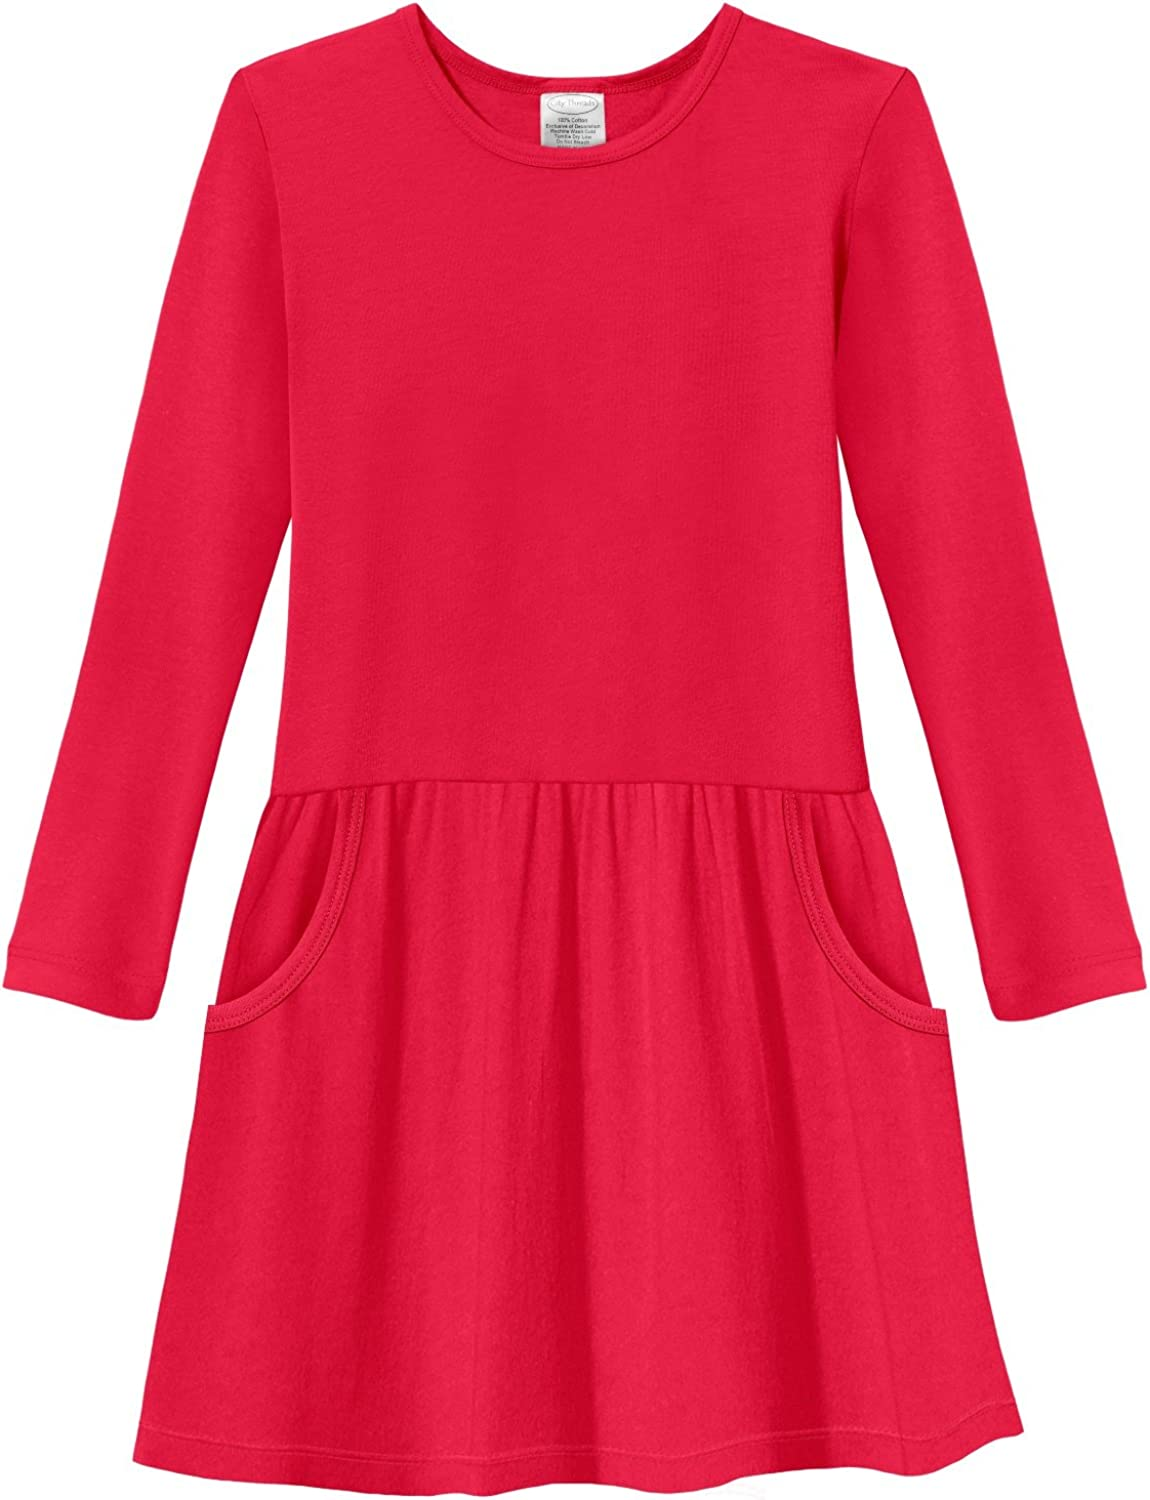 City Threads Girls' Drop Waist French Pocket Party Dress Long Sleeve 100% Cotton for School Play Made in USA